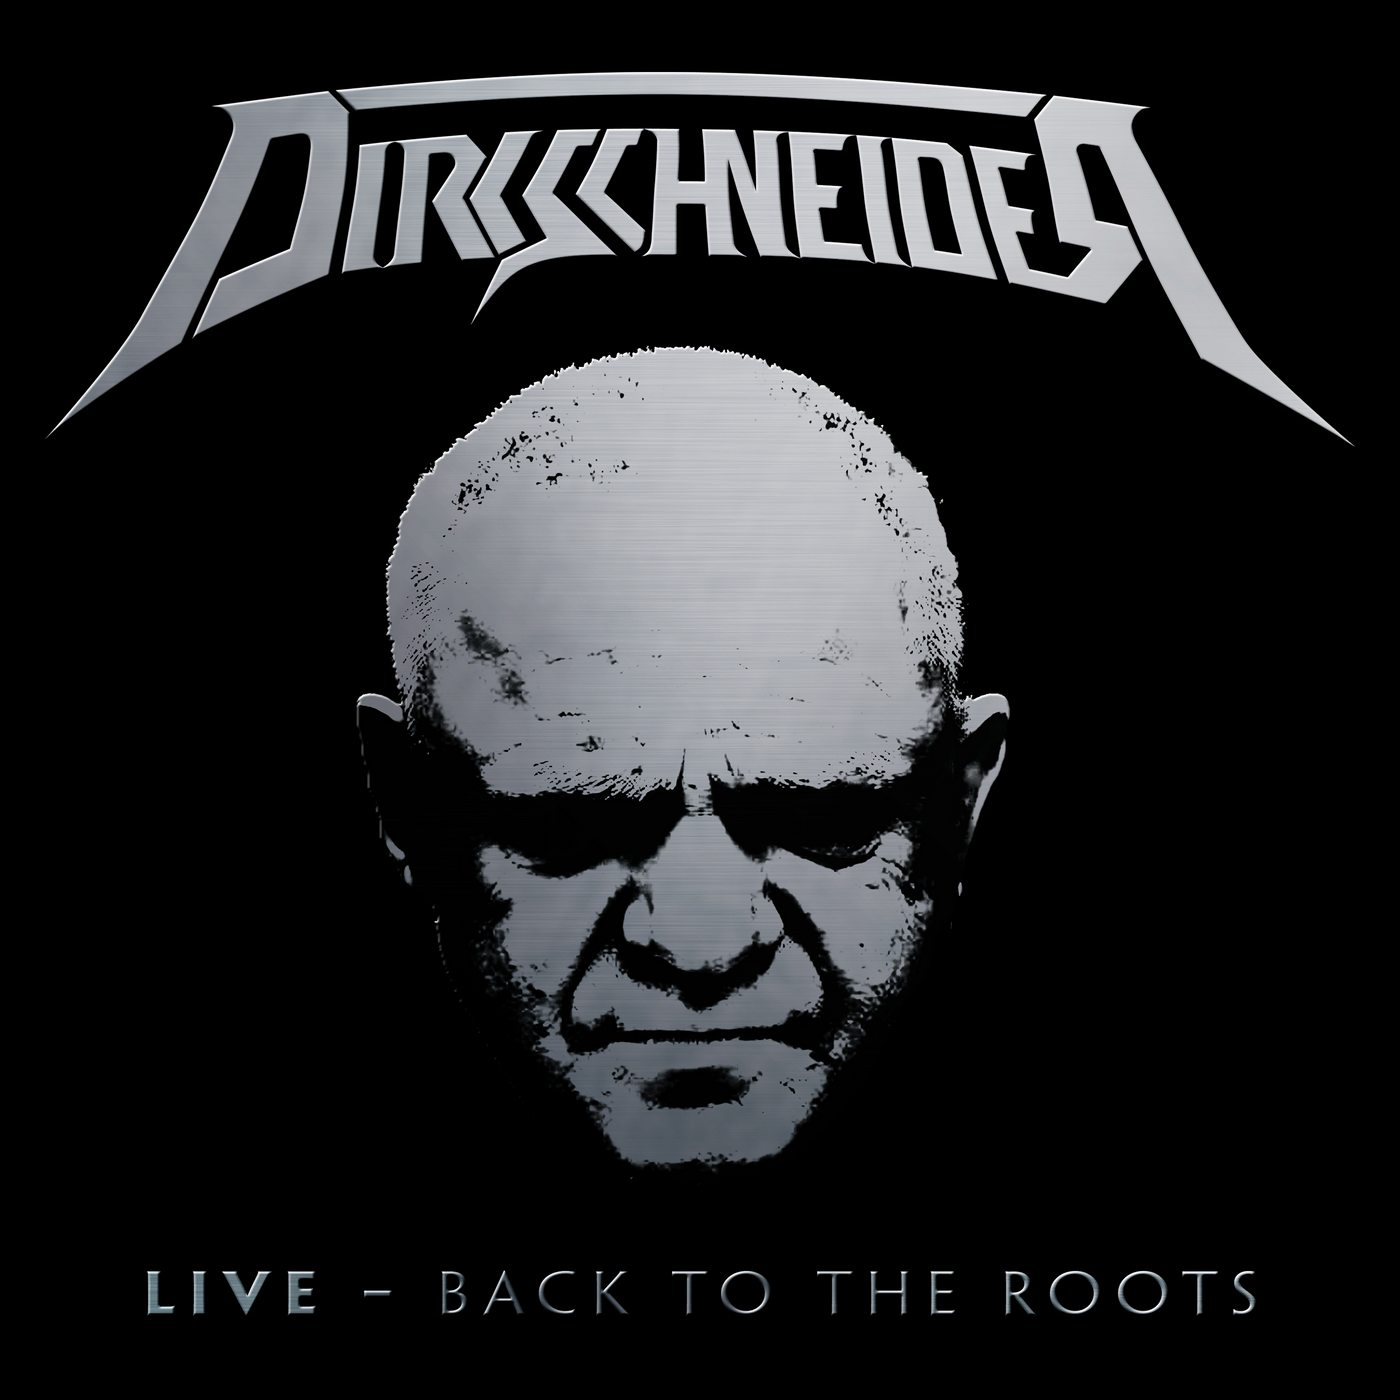 Dirkschneider: Live - Back To The Roots (2016) Book Cover